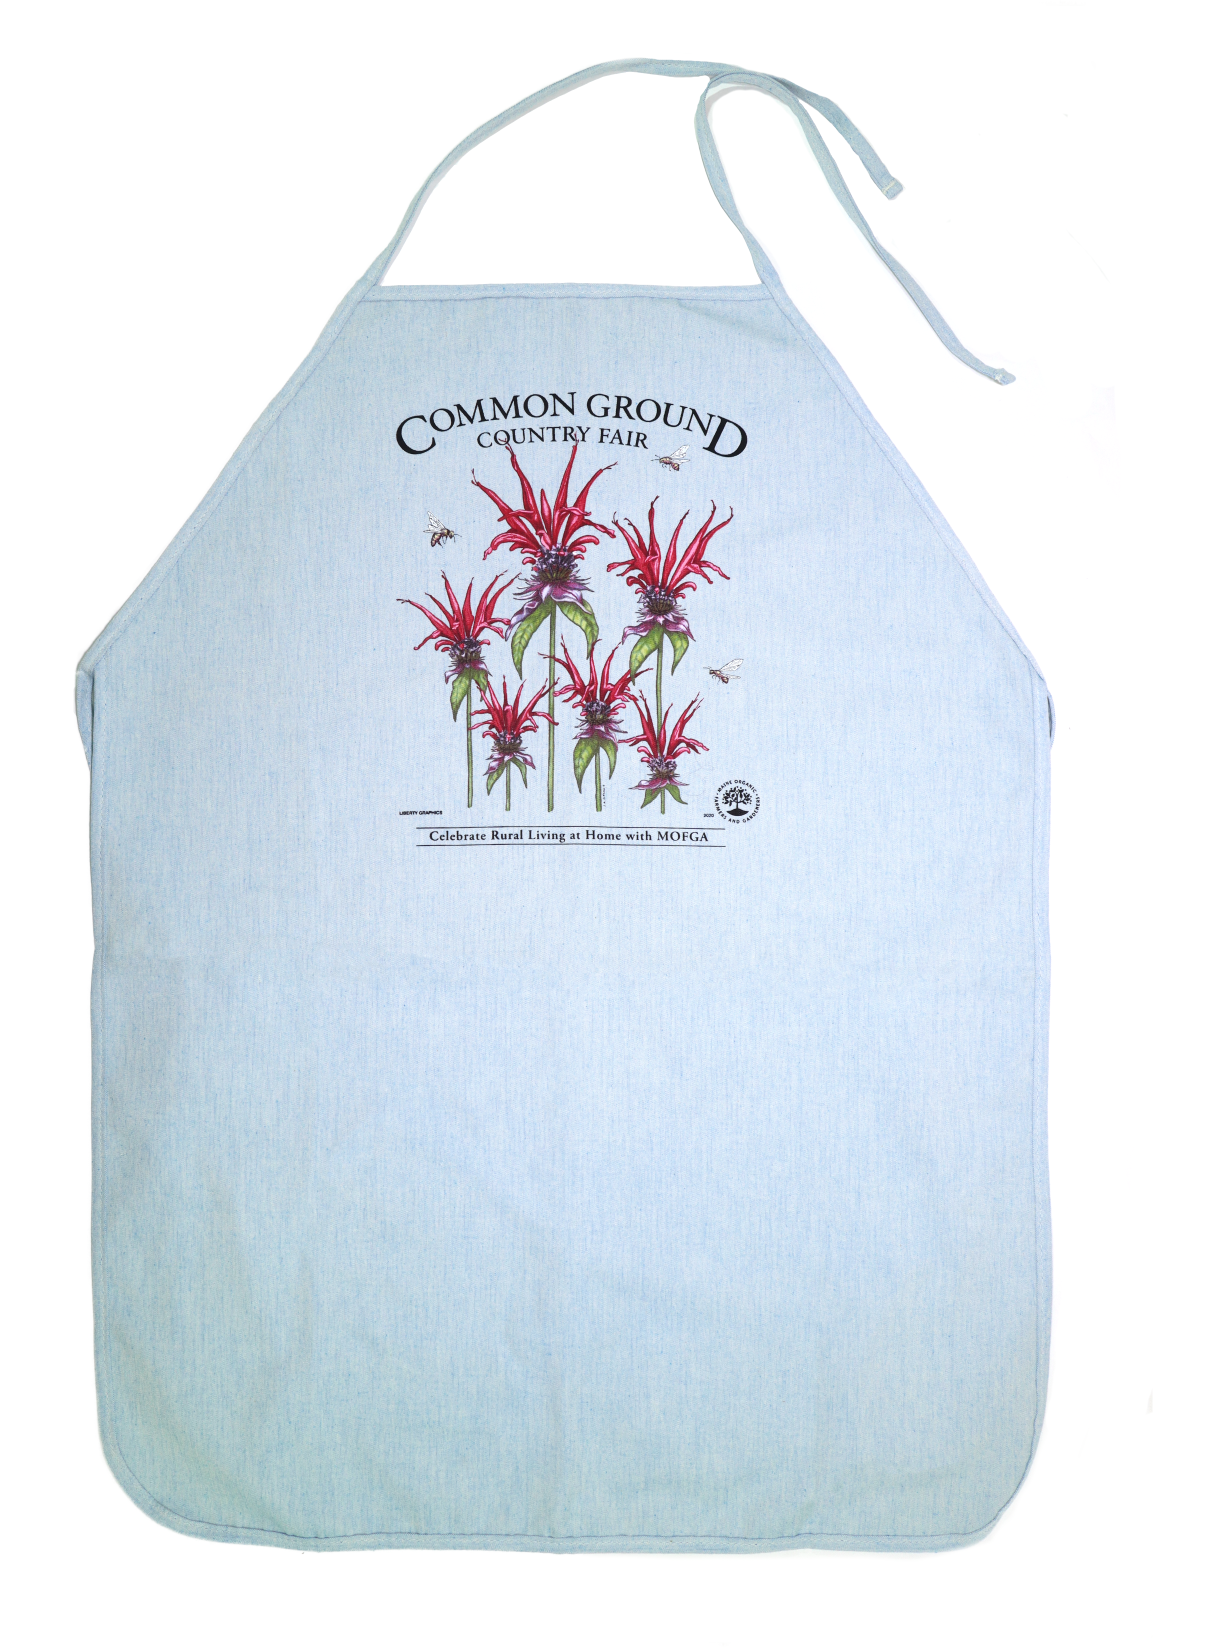 2020 Common Ground Country Fair - Apron